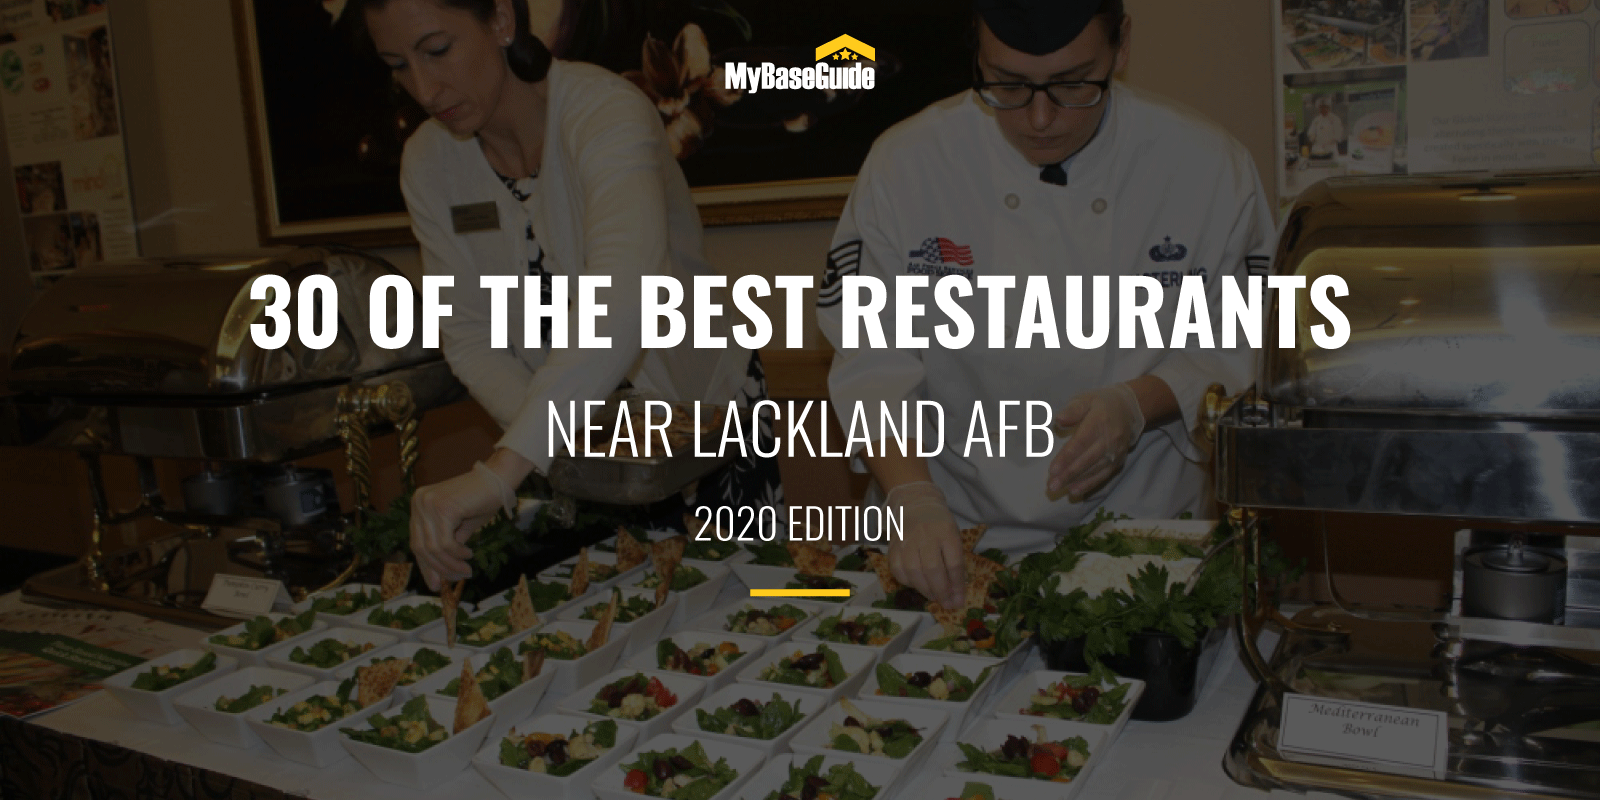 30 of the Best Restaurants Near Lackland AFB